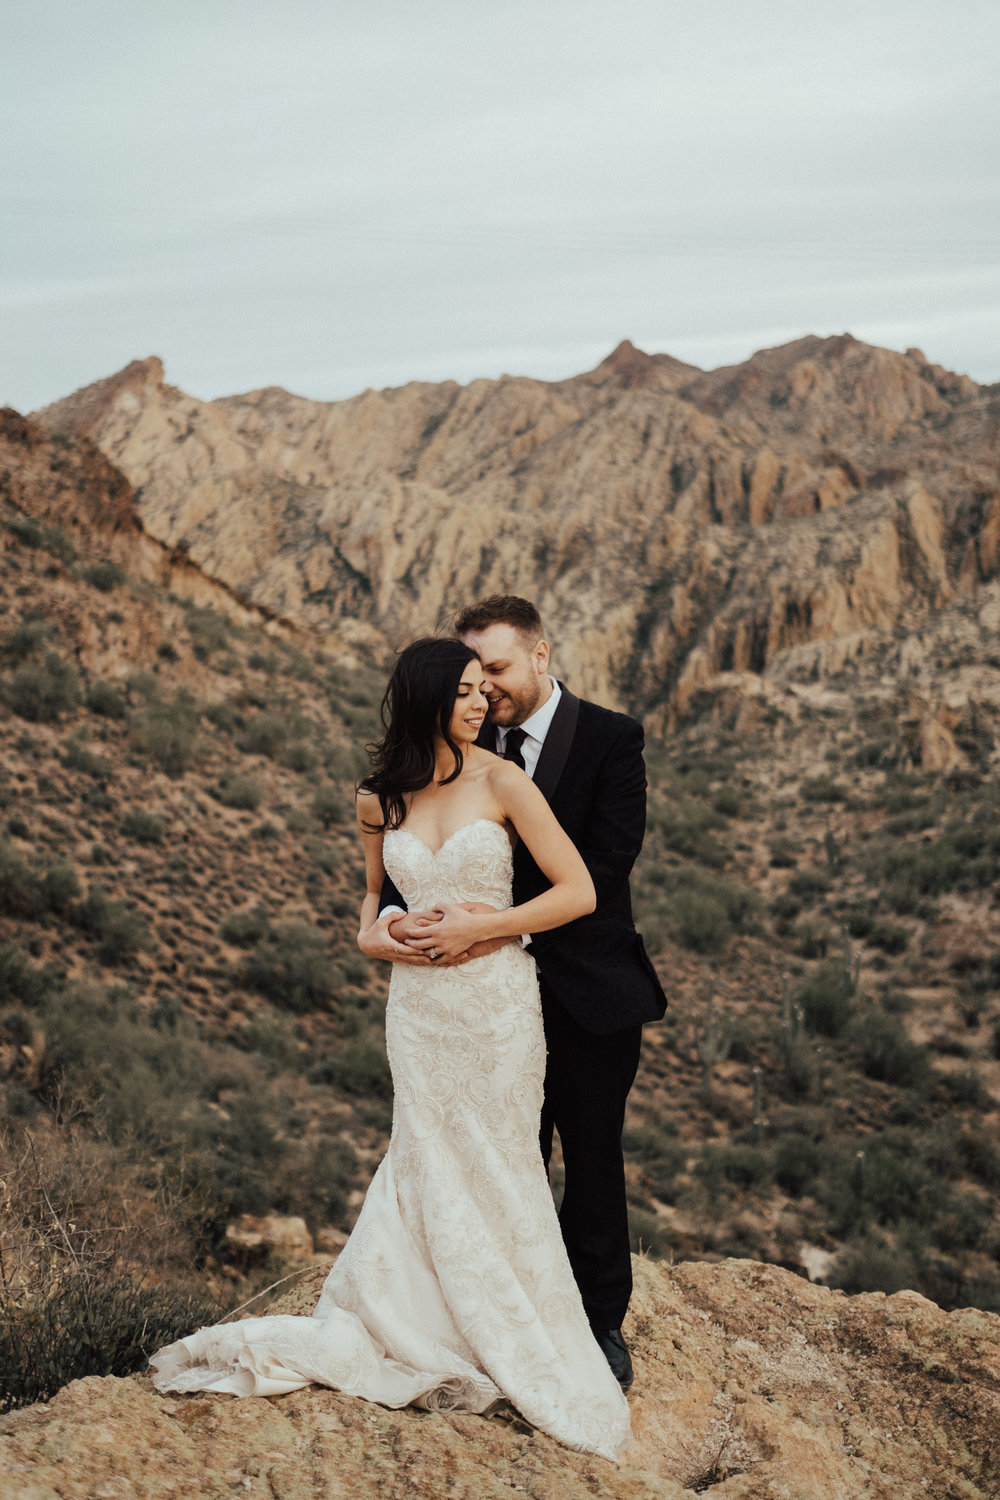 Arizona-Adventure-Elopement-Wedding-Photographer-56.jpg